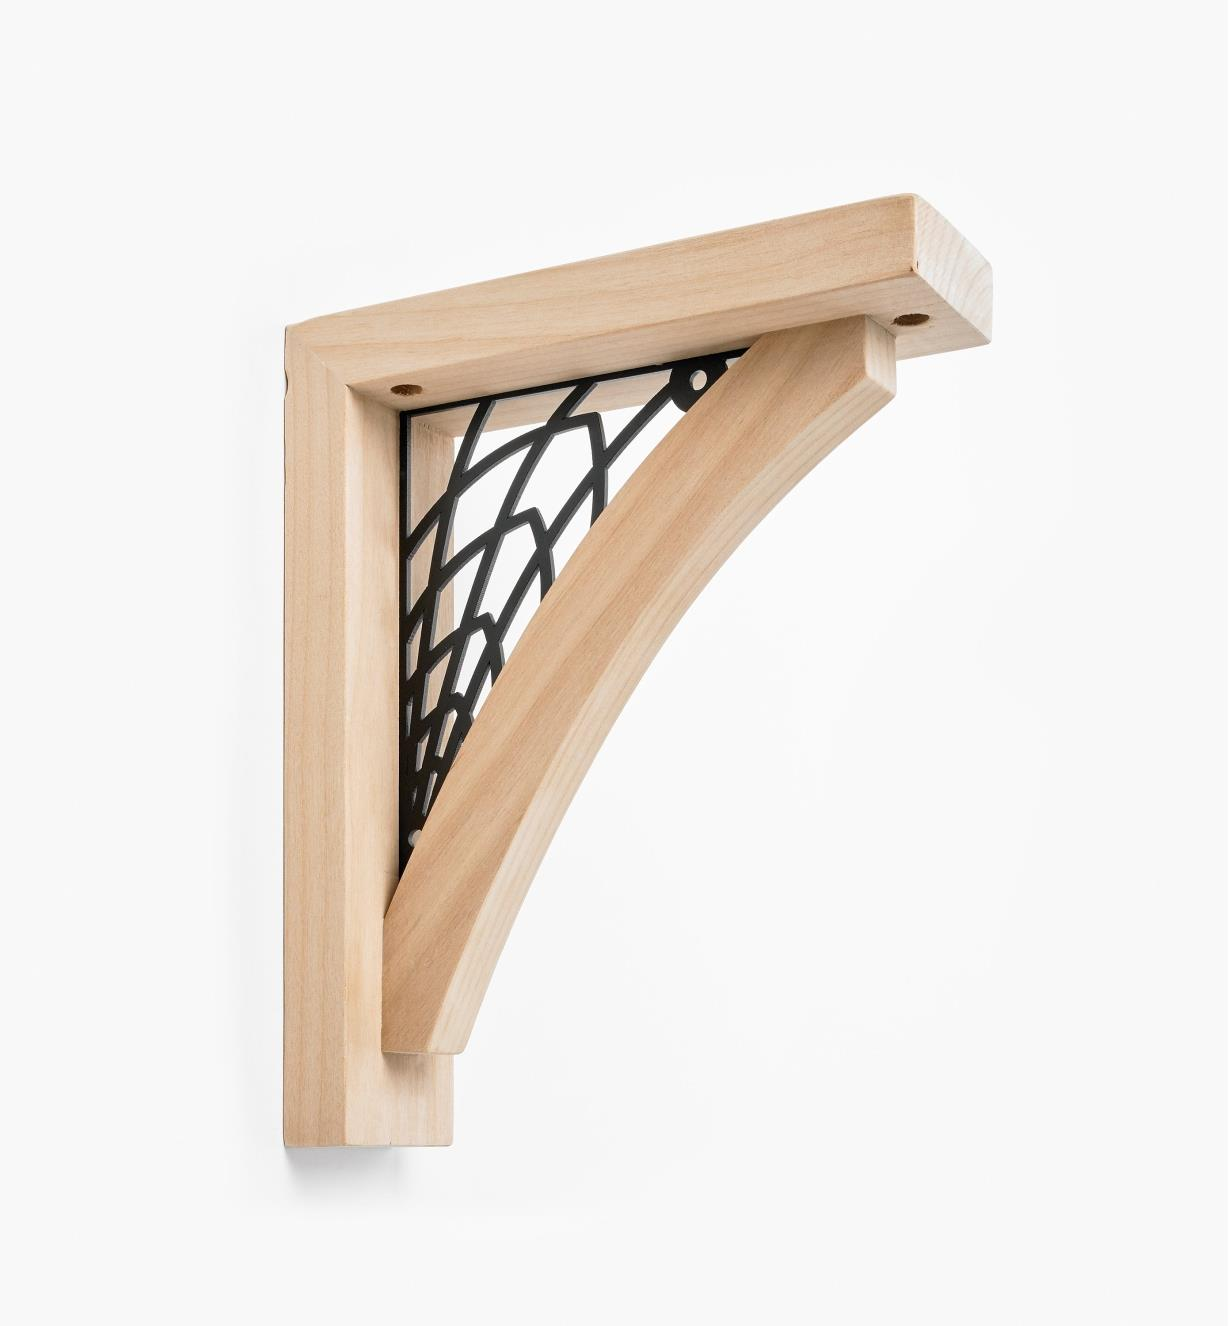 00S0730 - Web Wooden Shelf Bracket